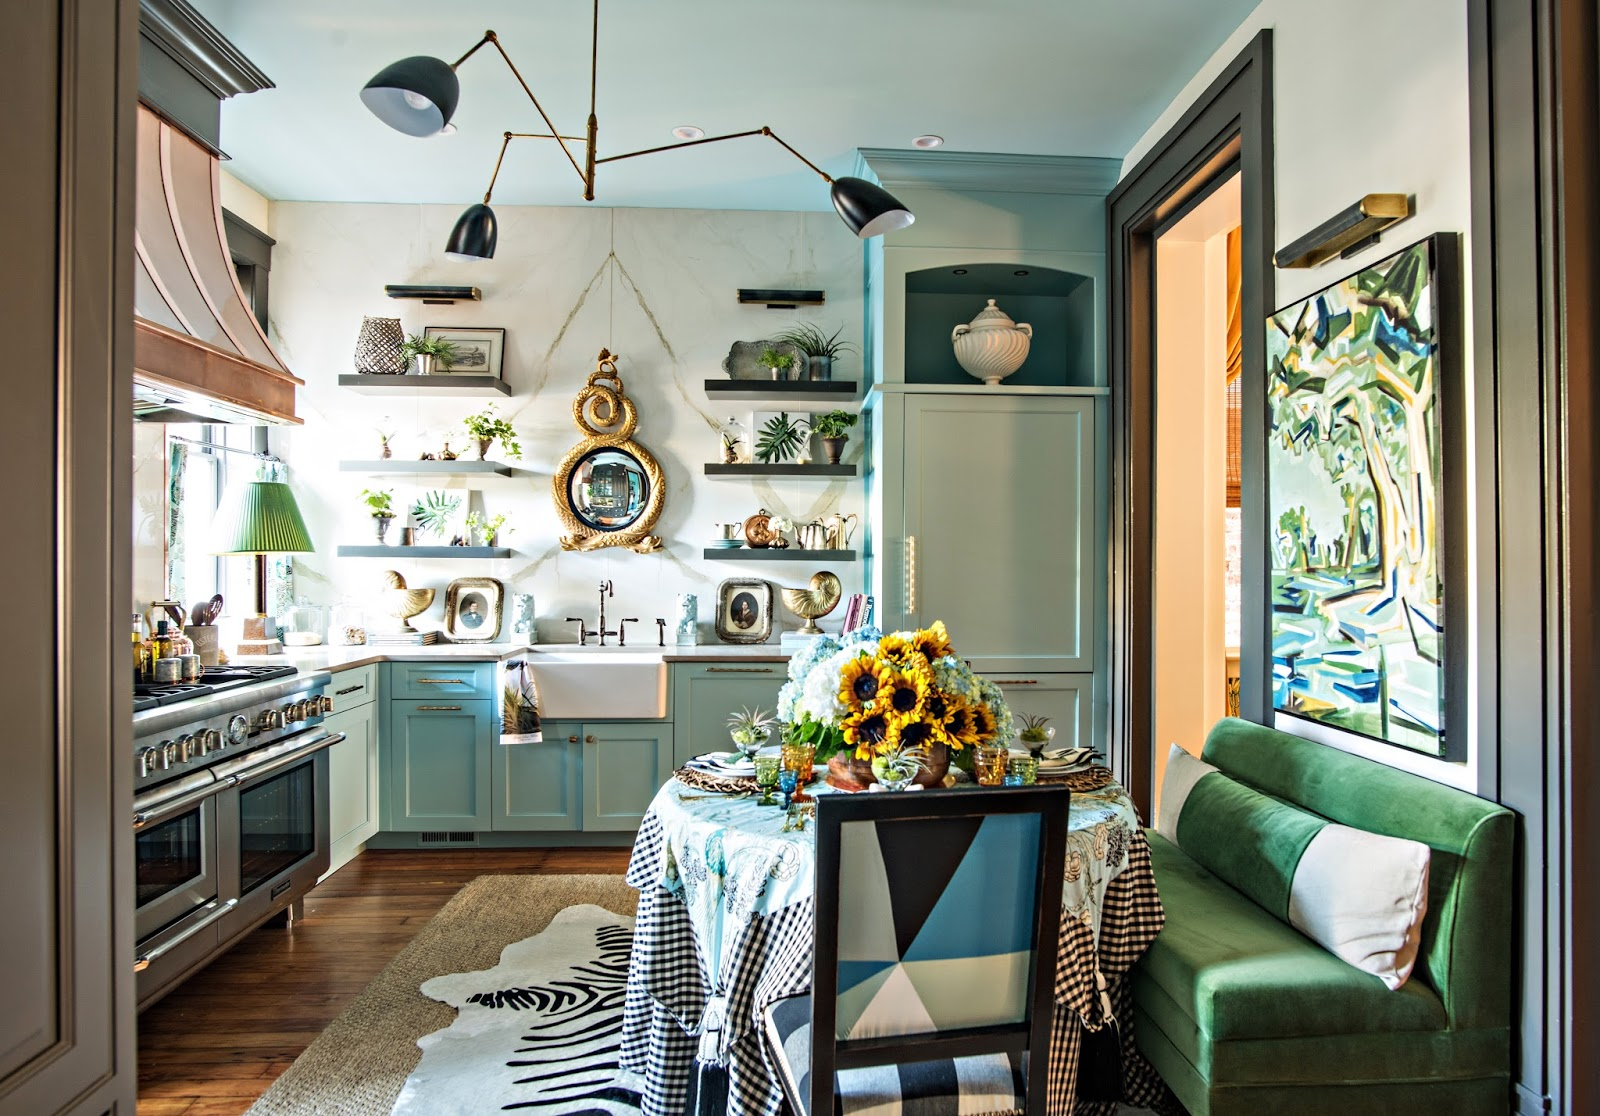 Design by  Lisa Mende  for the Southern Style Now 2017 Showhouse, presented by Traditional Home Magazine